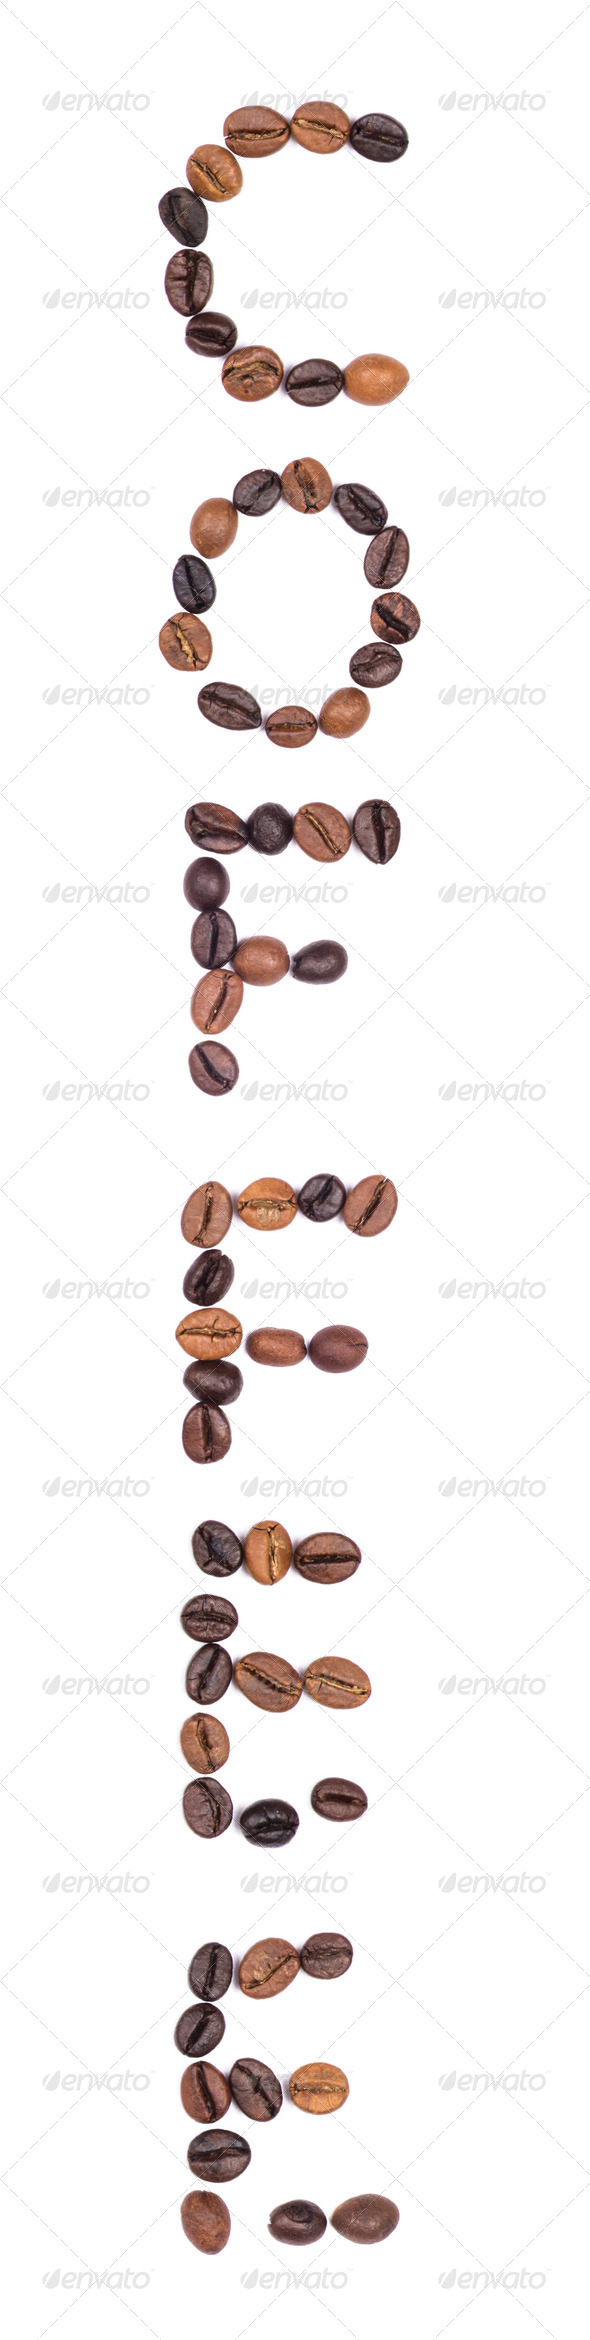 PhotoDune coffee beans 4096462